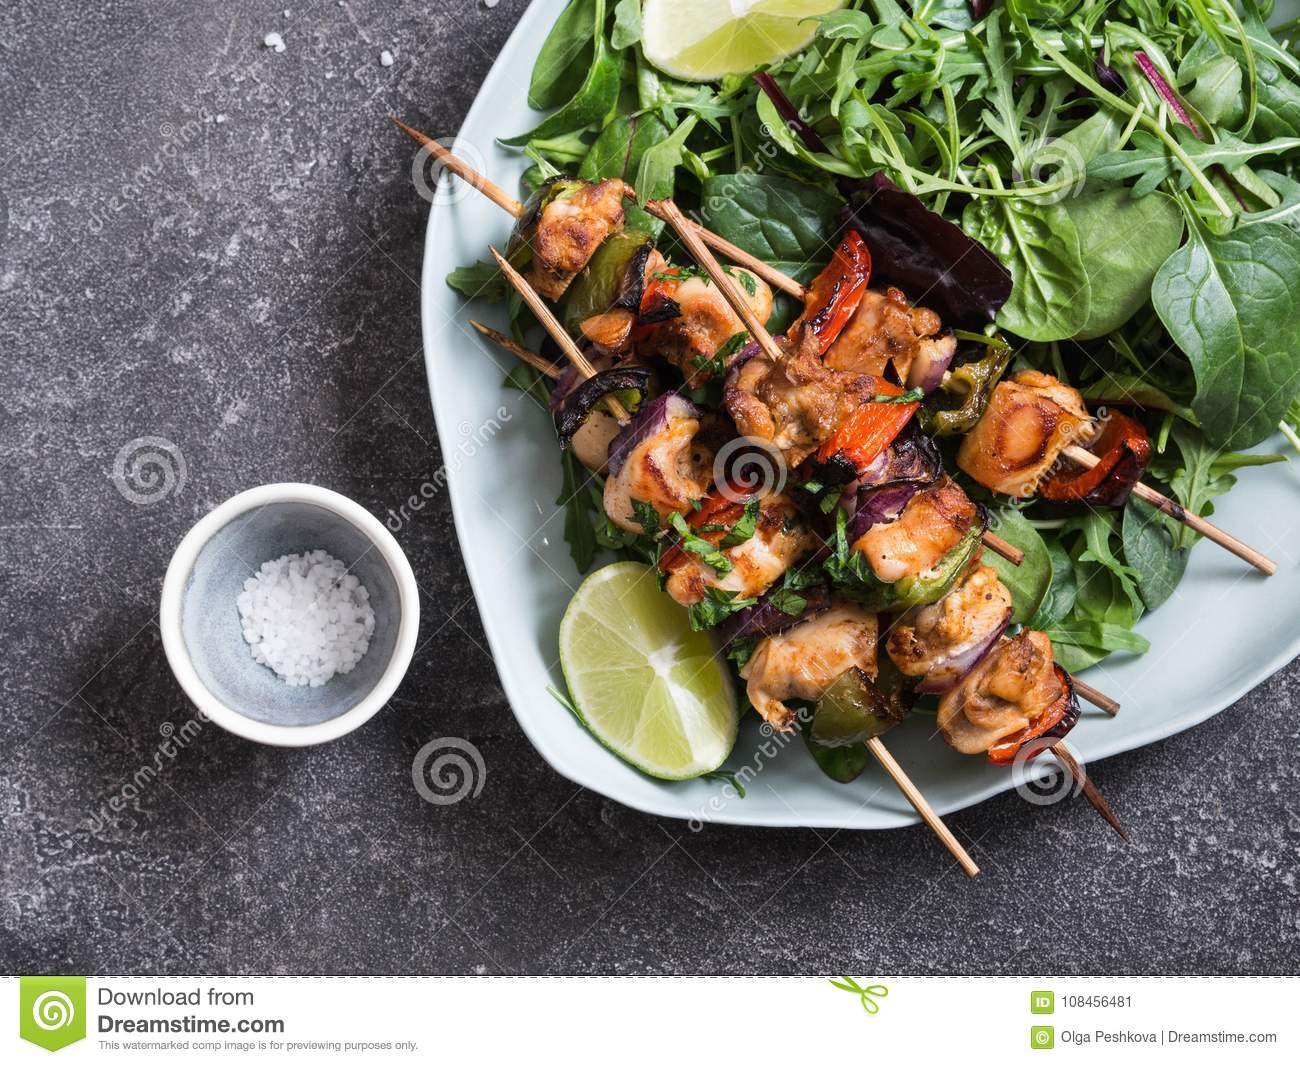 Chicken on skewers on oval dish and fresh salad plate with mixed greens with chicken on skewers